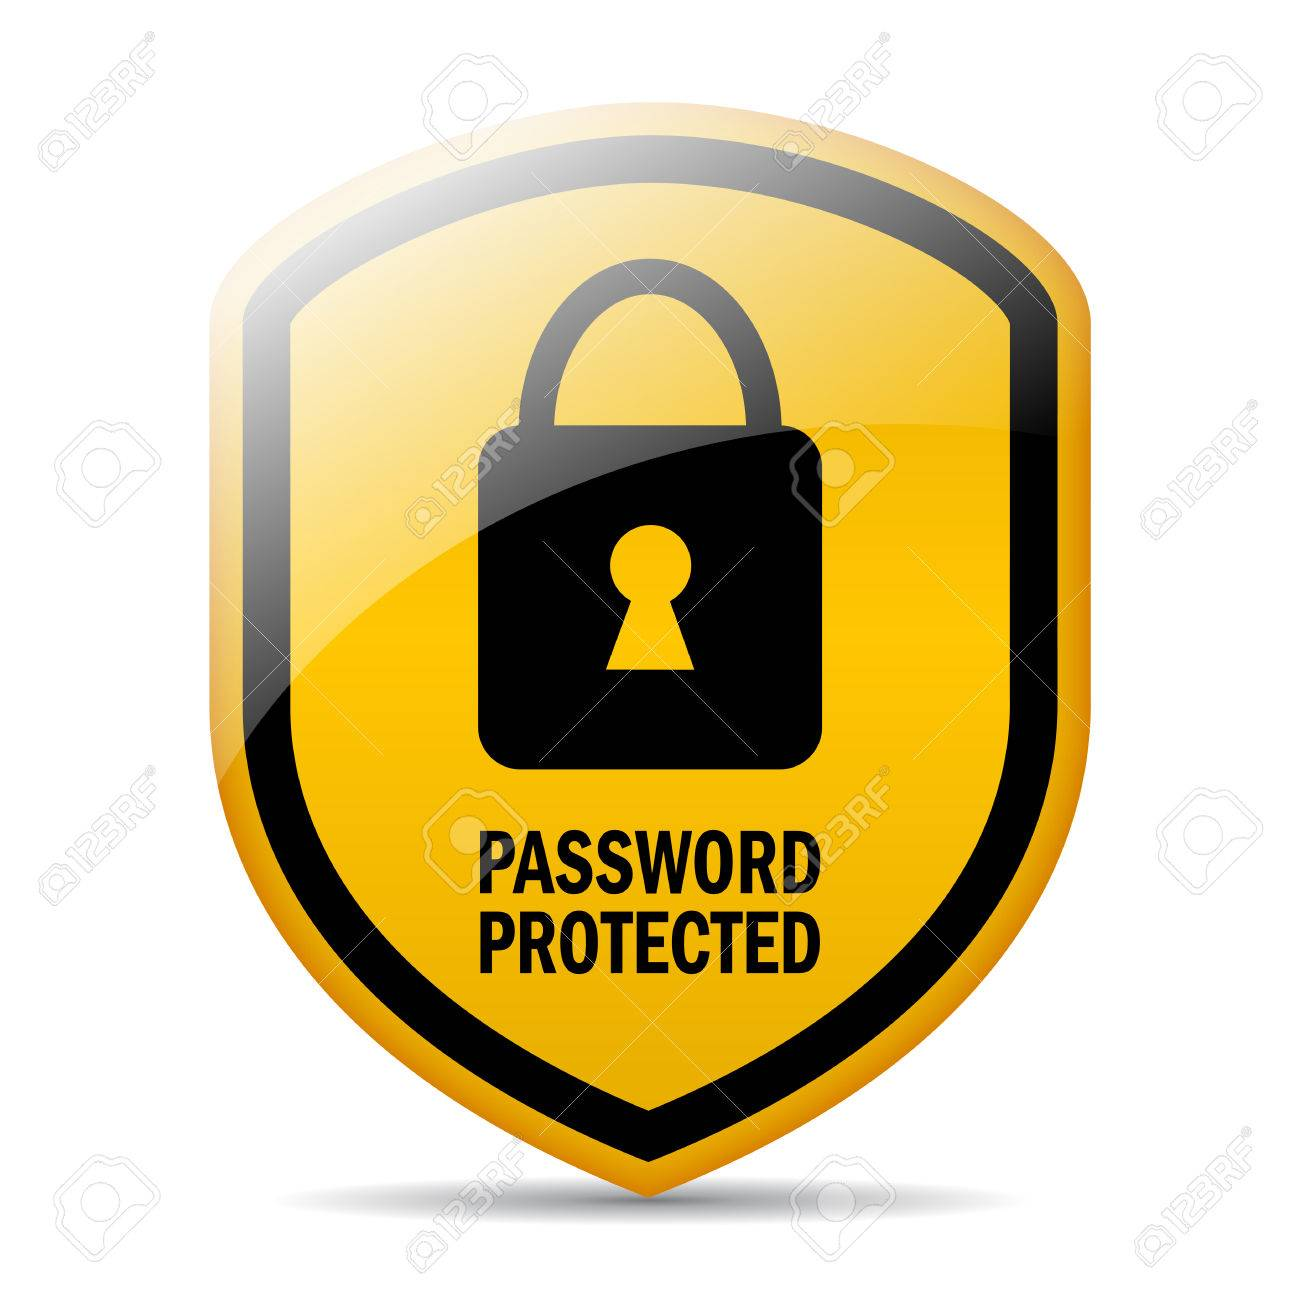 Password Protected Royalty Free Cliparts, Vectors, And Stock ...